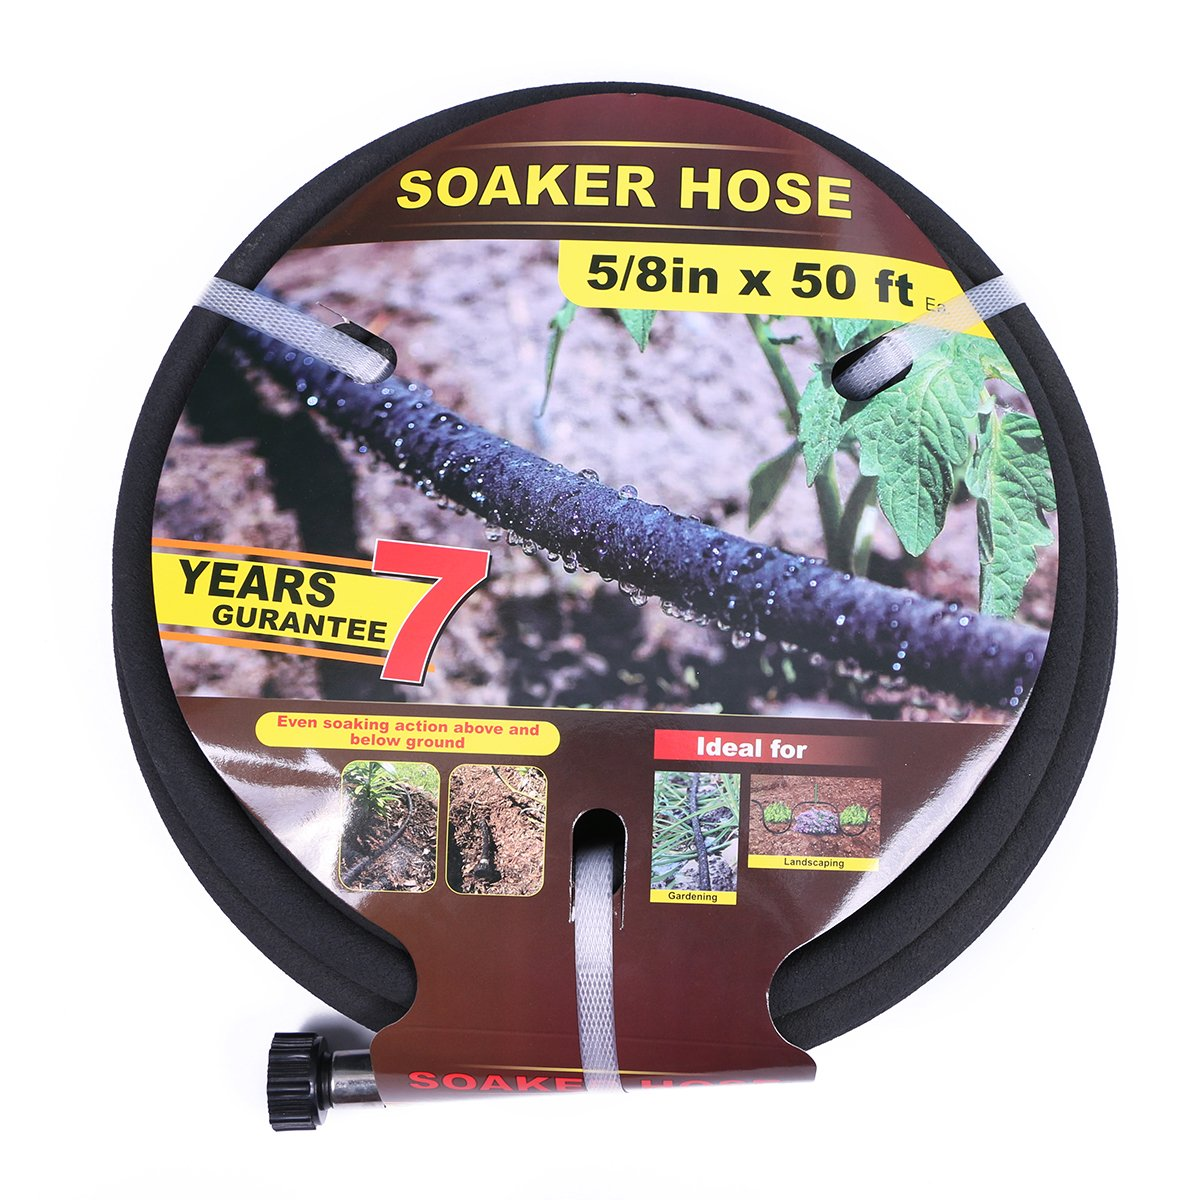 Taisia 5/8 inch Soaker Hose 50ft Lead Free Saves 70%Water